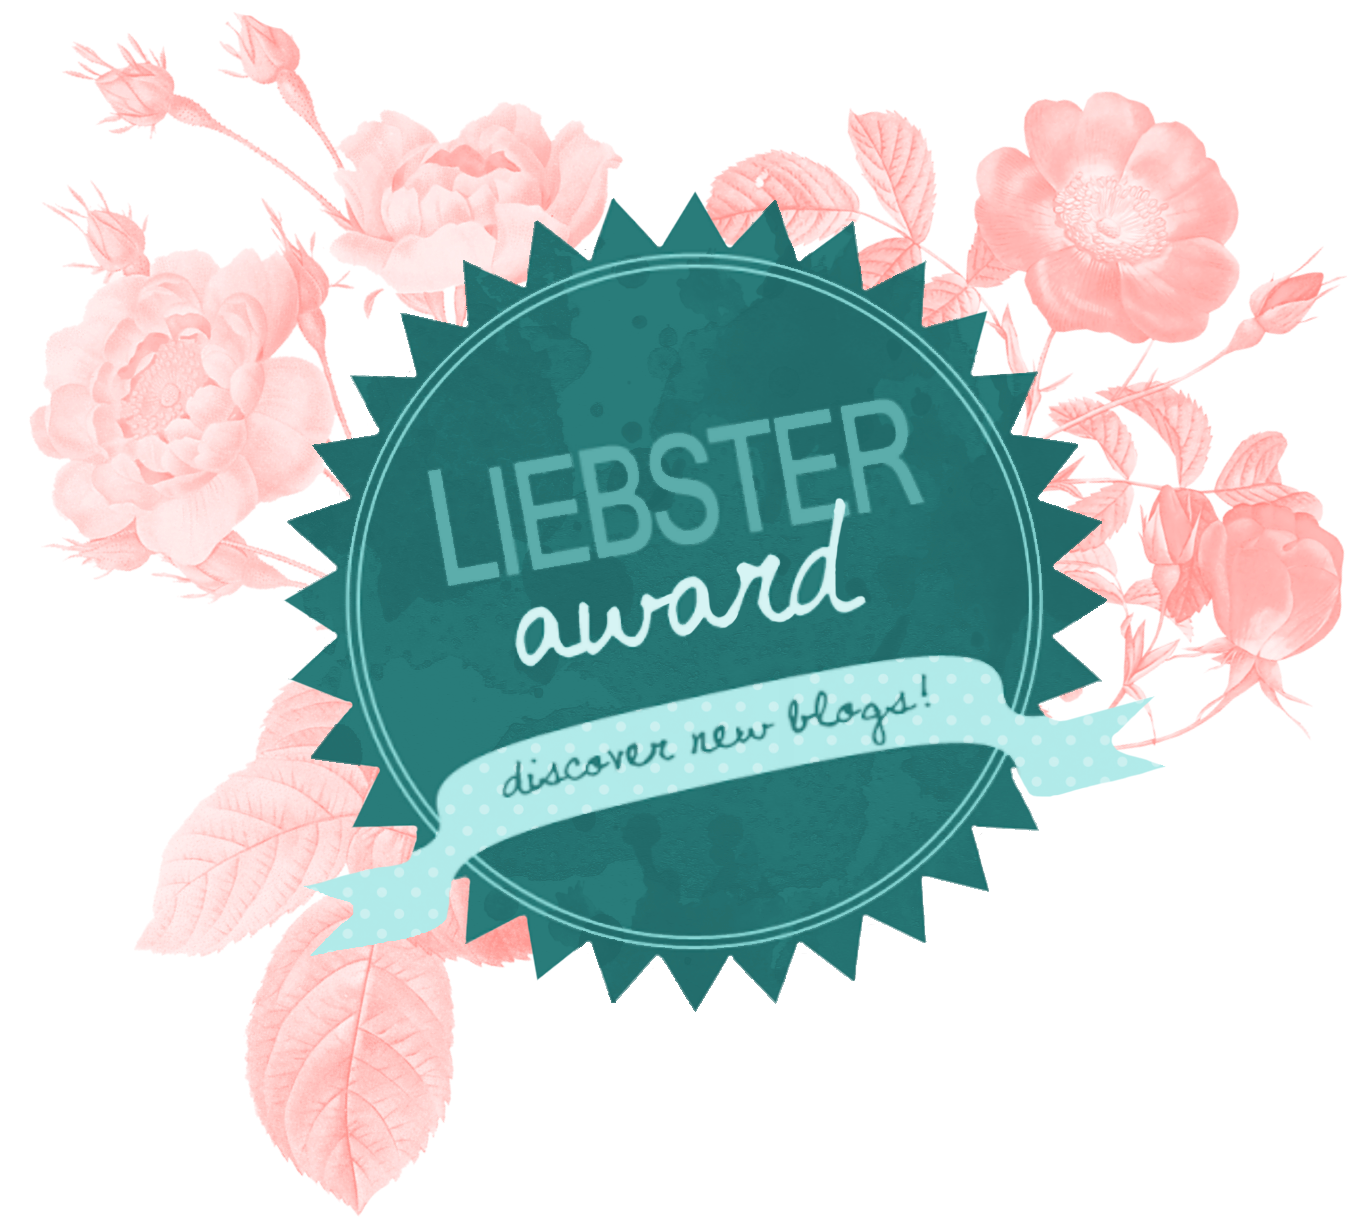 Liebster Award Blogging Nomination